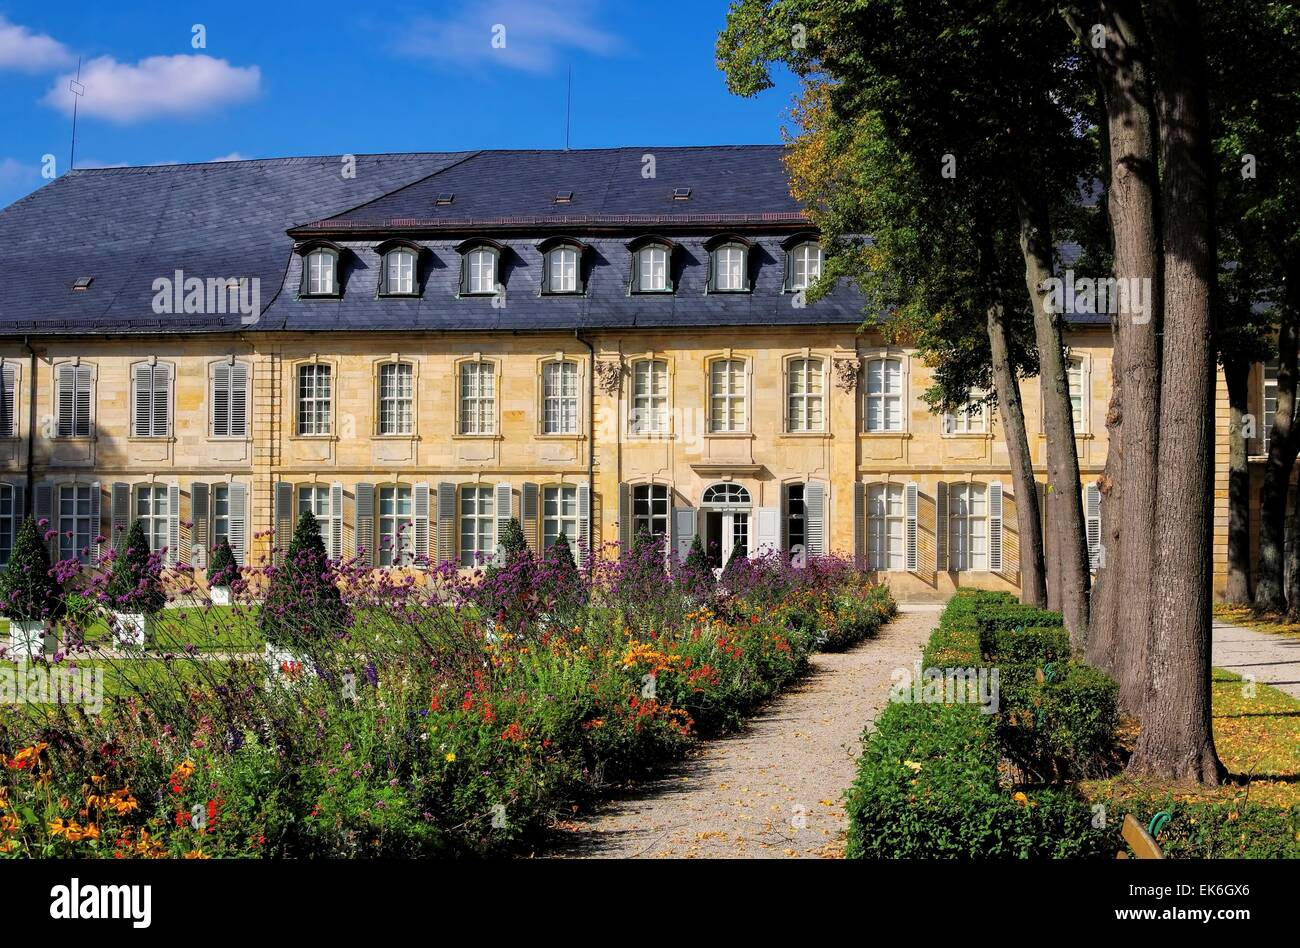 Bayreuth Neues Schloss - Bayreuth New Palace 02 Stock Photo